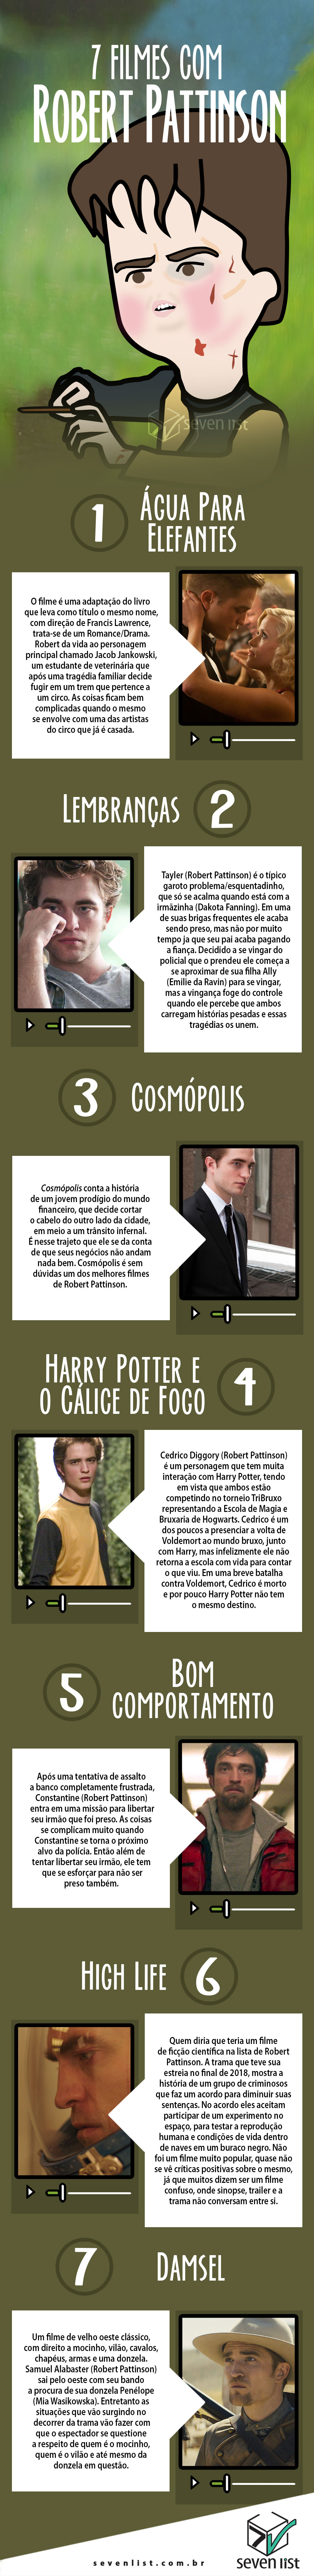 7 FILMES COM ROBERT PATTINSON - SEVEN LIST